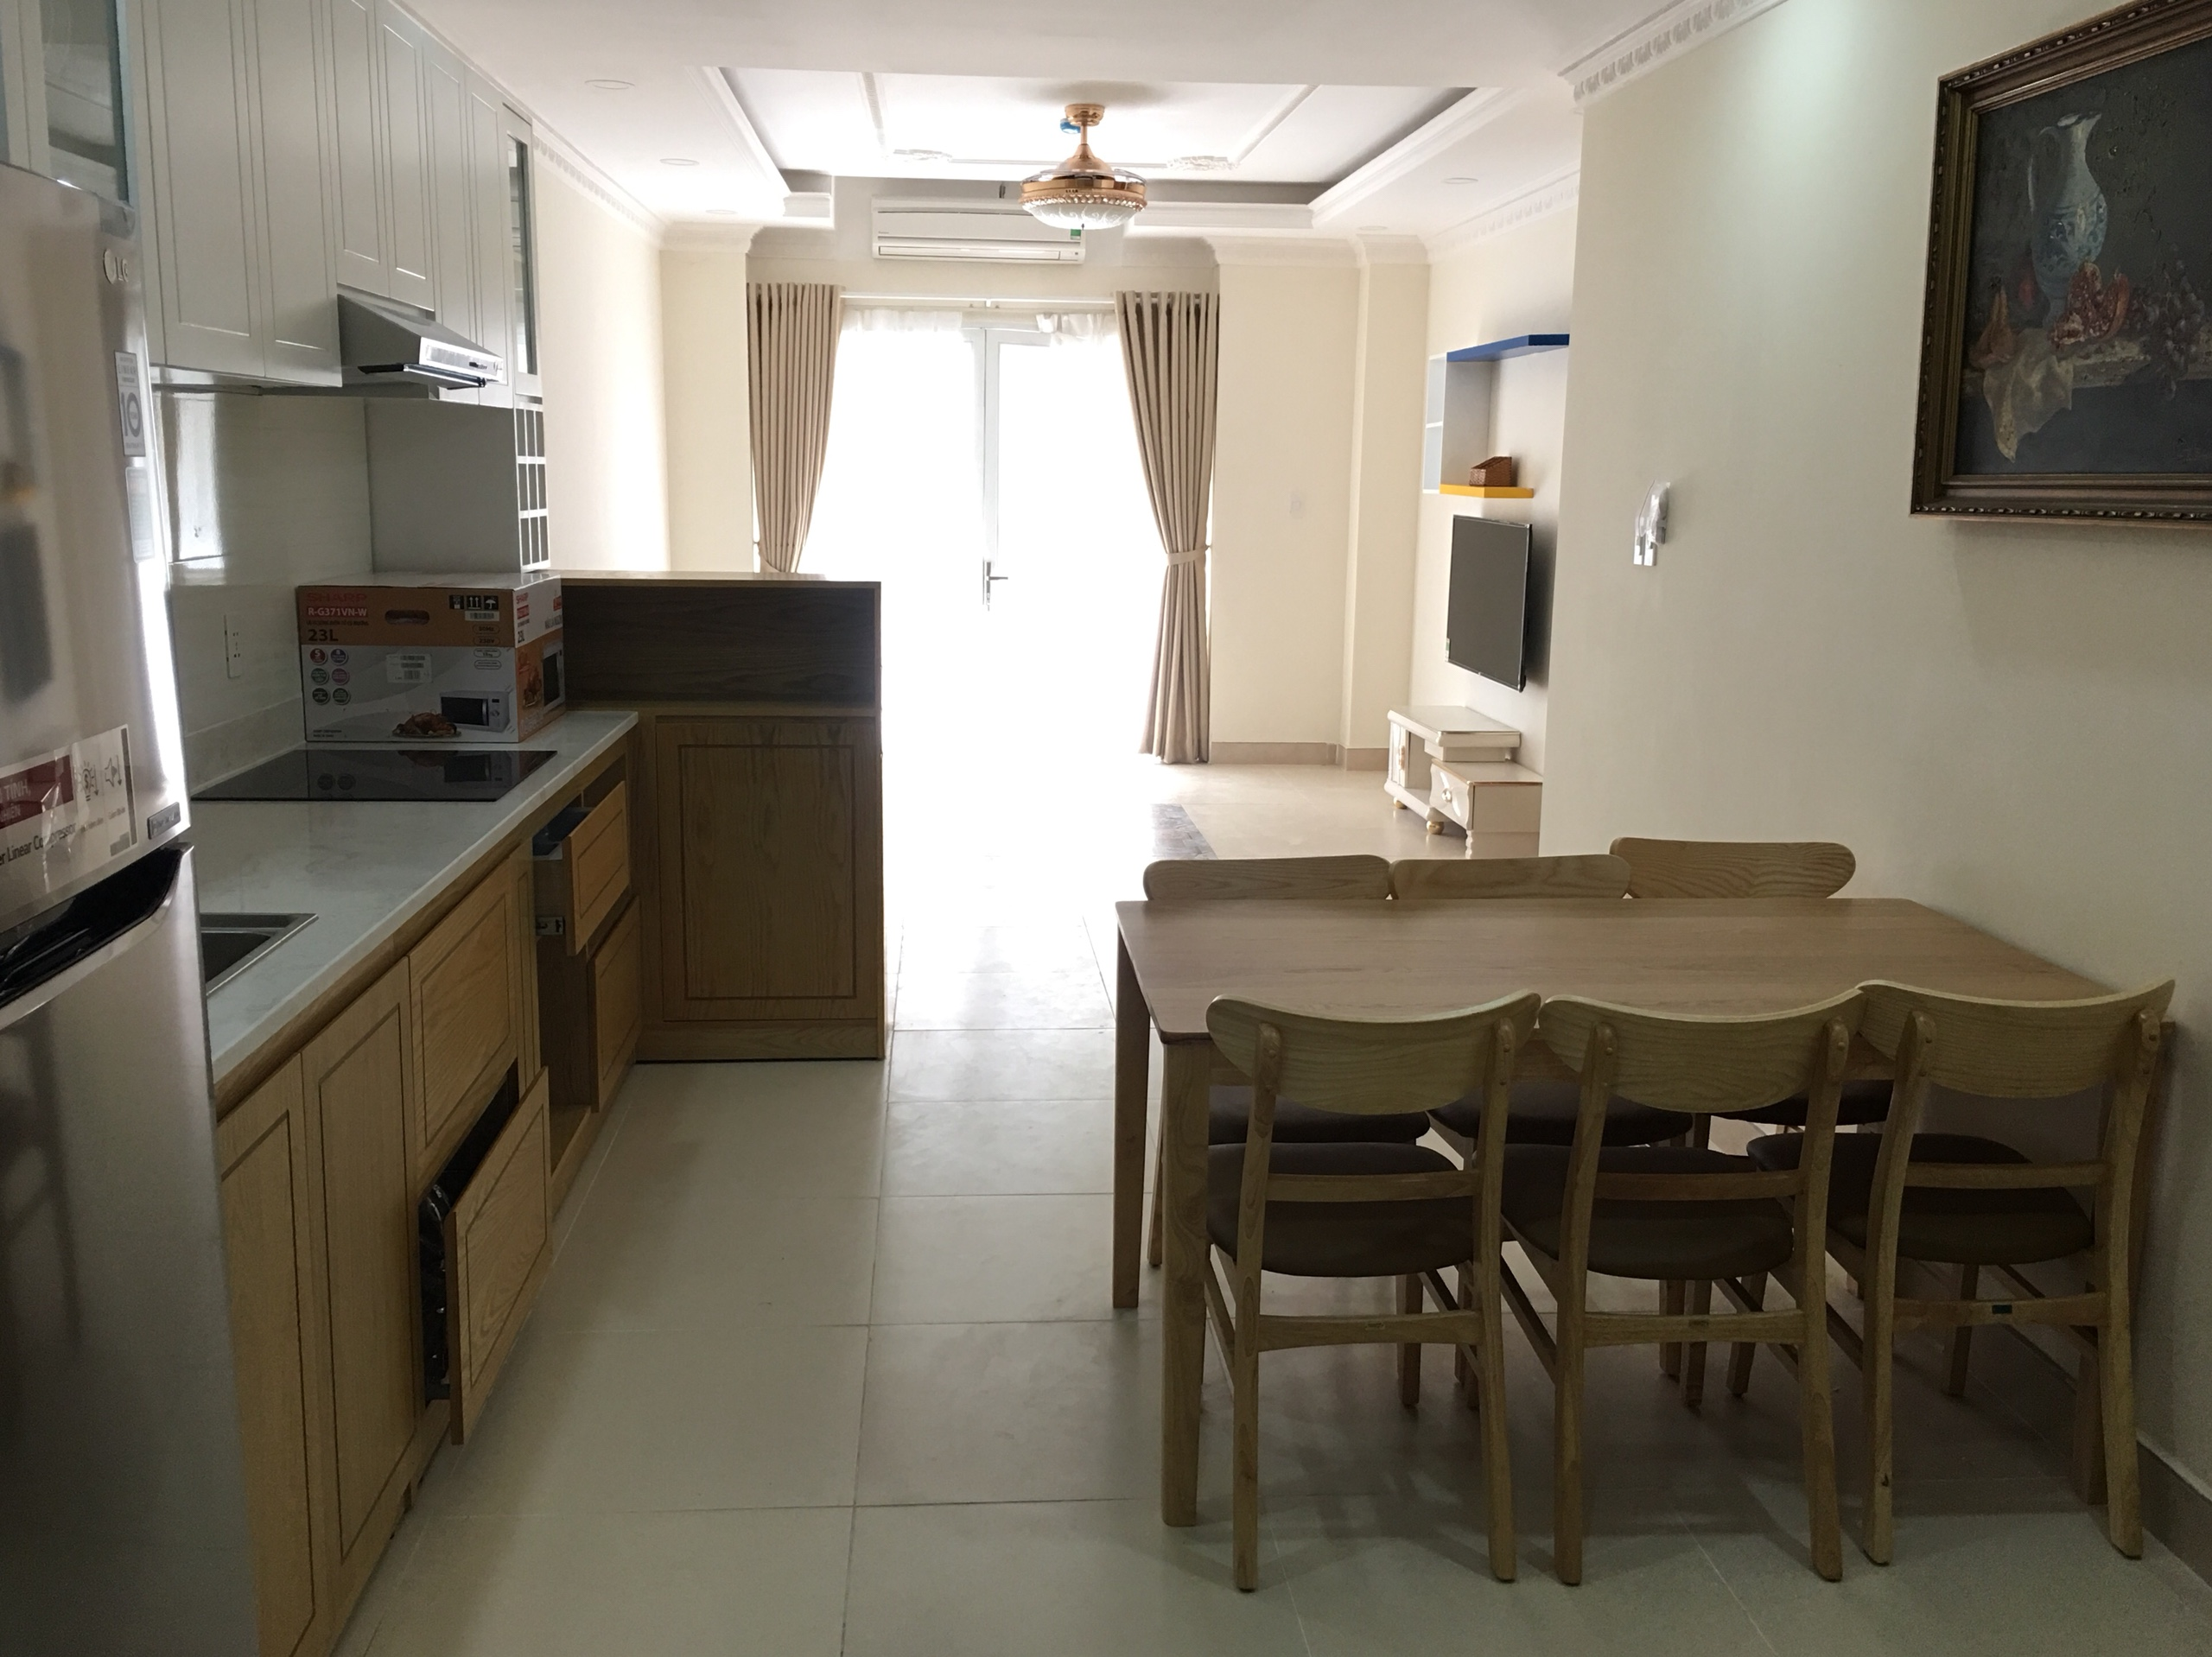 Serviced apartment for rent D299475 (11)